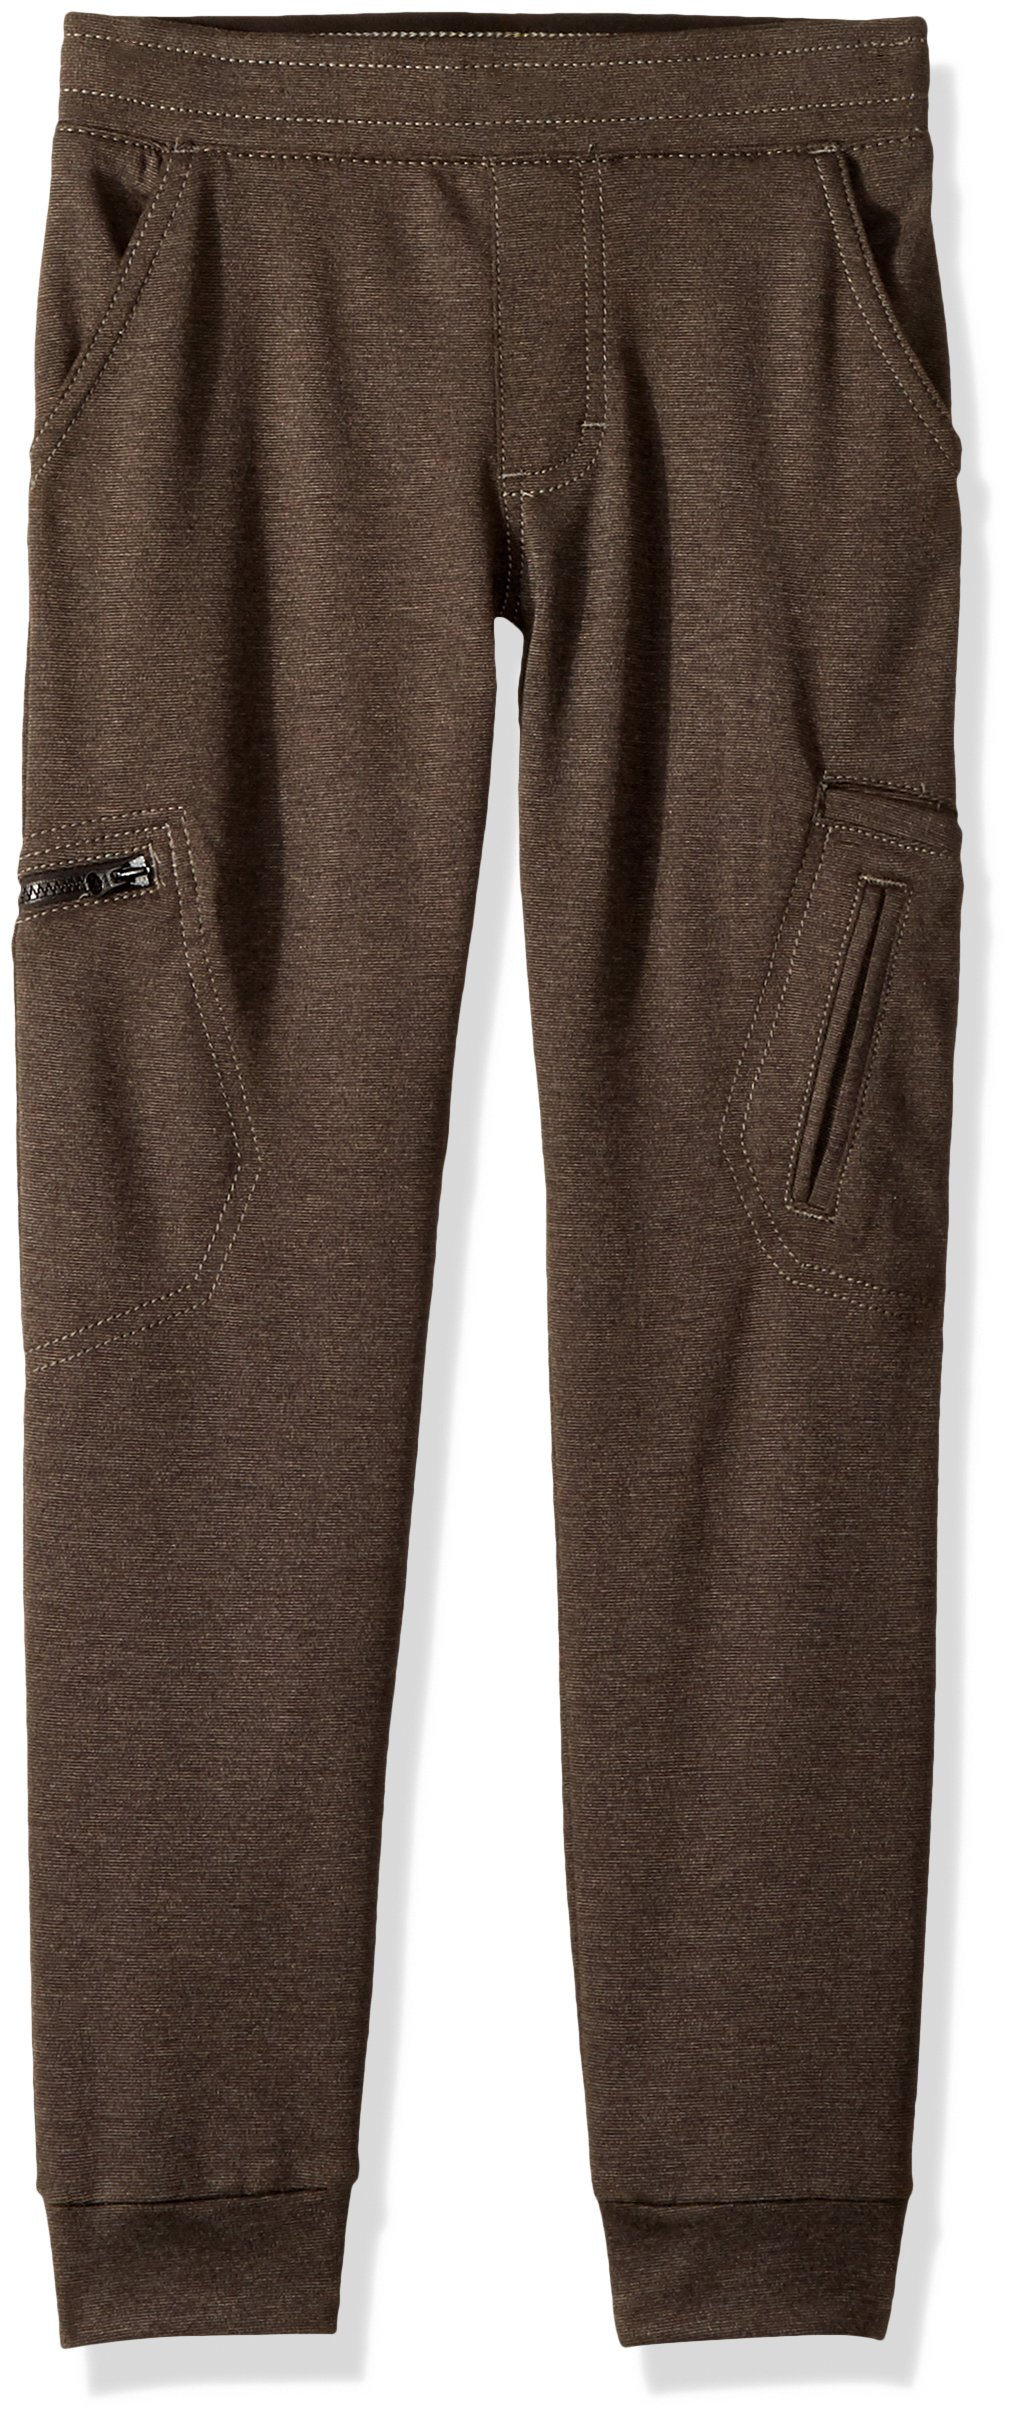 LEE Boys' Little X-Treme Comfort Pull-On Jogger Pant, Black Heather 5 Regular by LEE (Image #1)